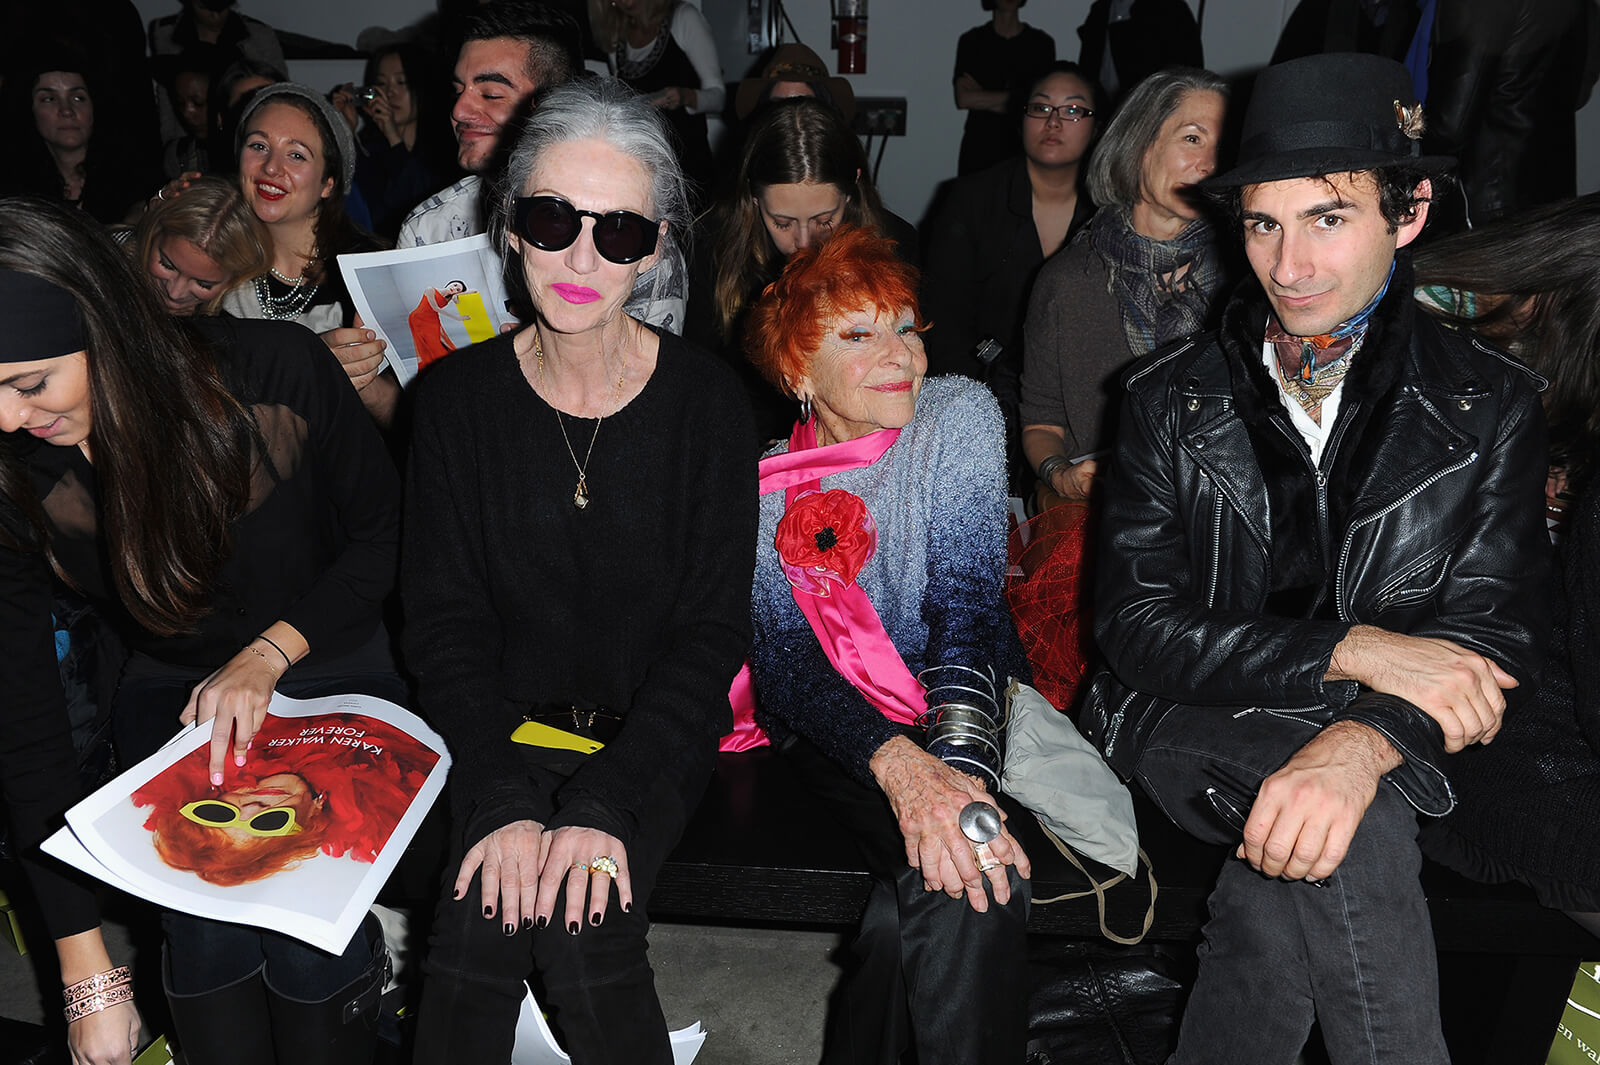 """Linda Rodin and Ilona Royce Smithkin and Erik Liberman attends Karen Walker during Fall 2013 Mercedes-Benz Fashion Week at Pier 59 on February 11, 2013 in New York City. Quiana Grent and Linda Rodin attend VH1 and MILK Celebrate New Reality Show THE SHOT Hosted by Photographer RUSSELL JAMES with his Prelude Exhibition """"Gorgeous"""" at Milk Studios Penthouse on October 25, 2007 in New York City. (Guliver Photos/ Getty Images)"""